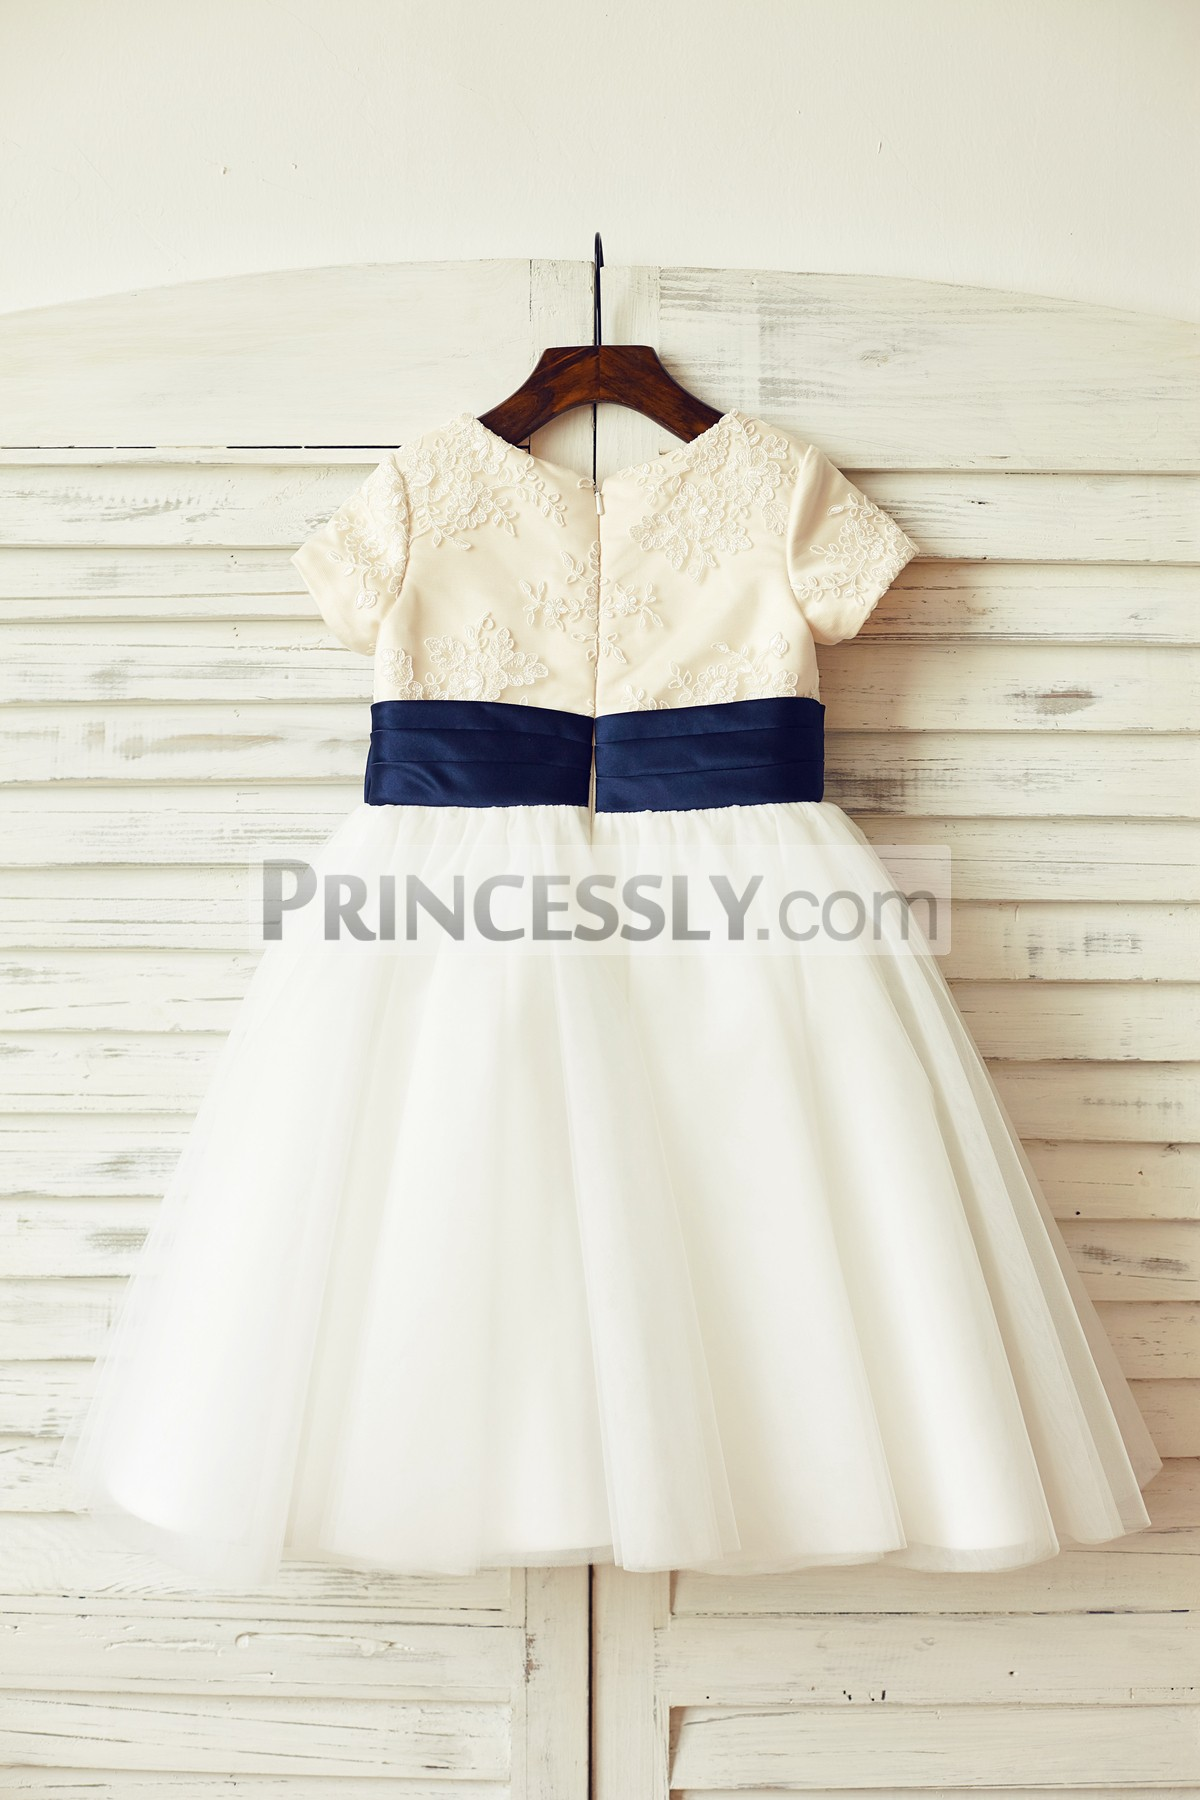 Short Sleeves Ivory Lace Tulle Flower Girl Dress With Navy